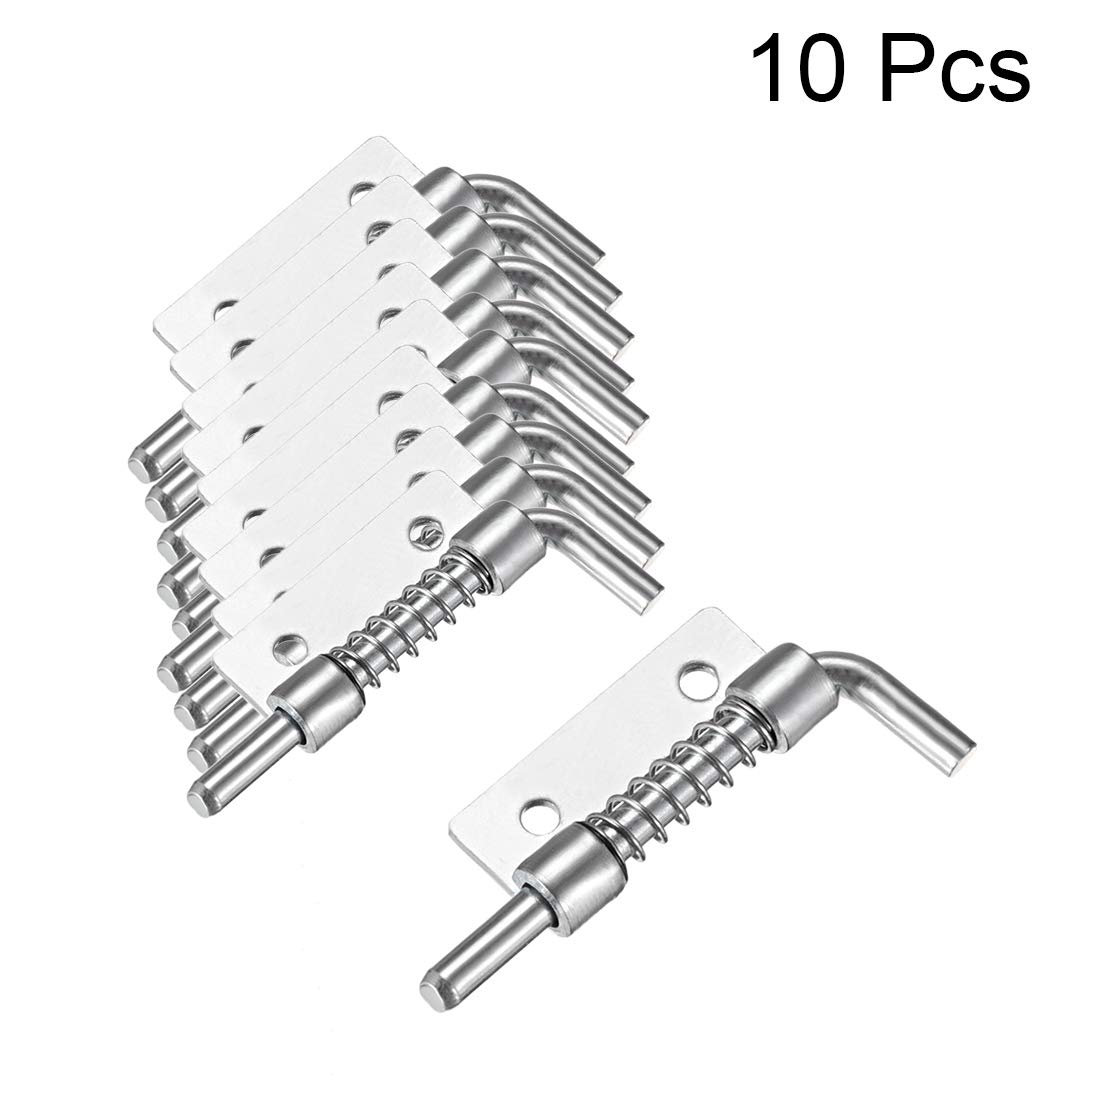 Right sourcing map 5 Pcs Carbon Steel Lock Bolt Spring Loaded Pin Latch 56mm Long